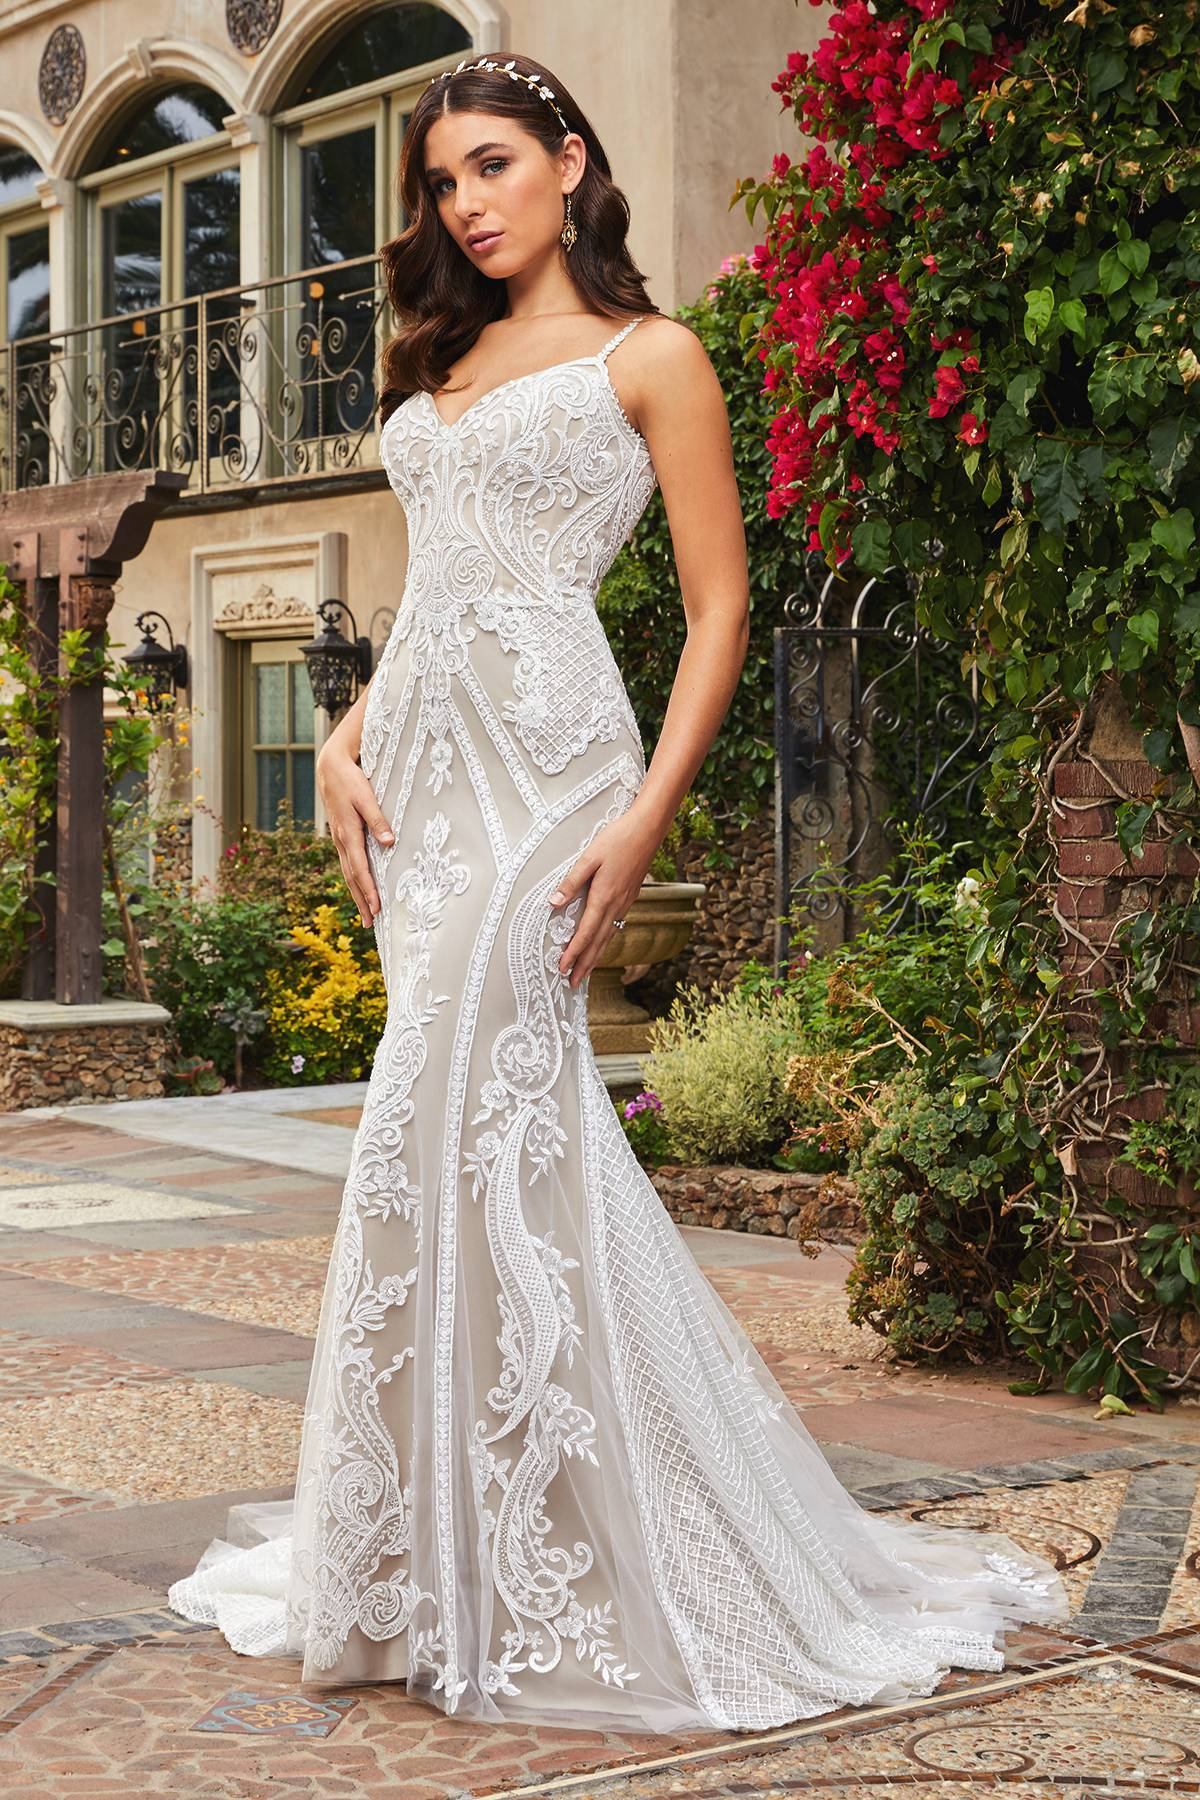 Kendra Style 20 by Casablanca Bridal   Find Your Dream Dress